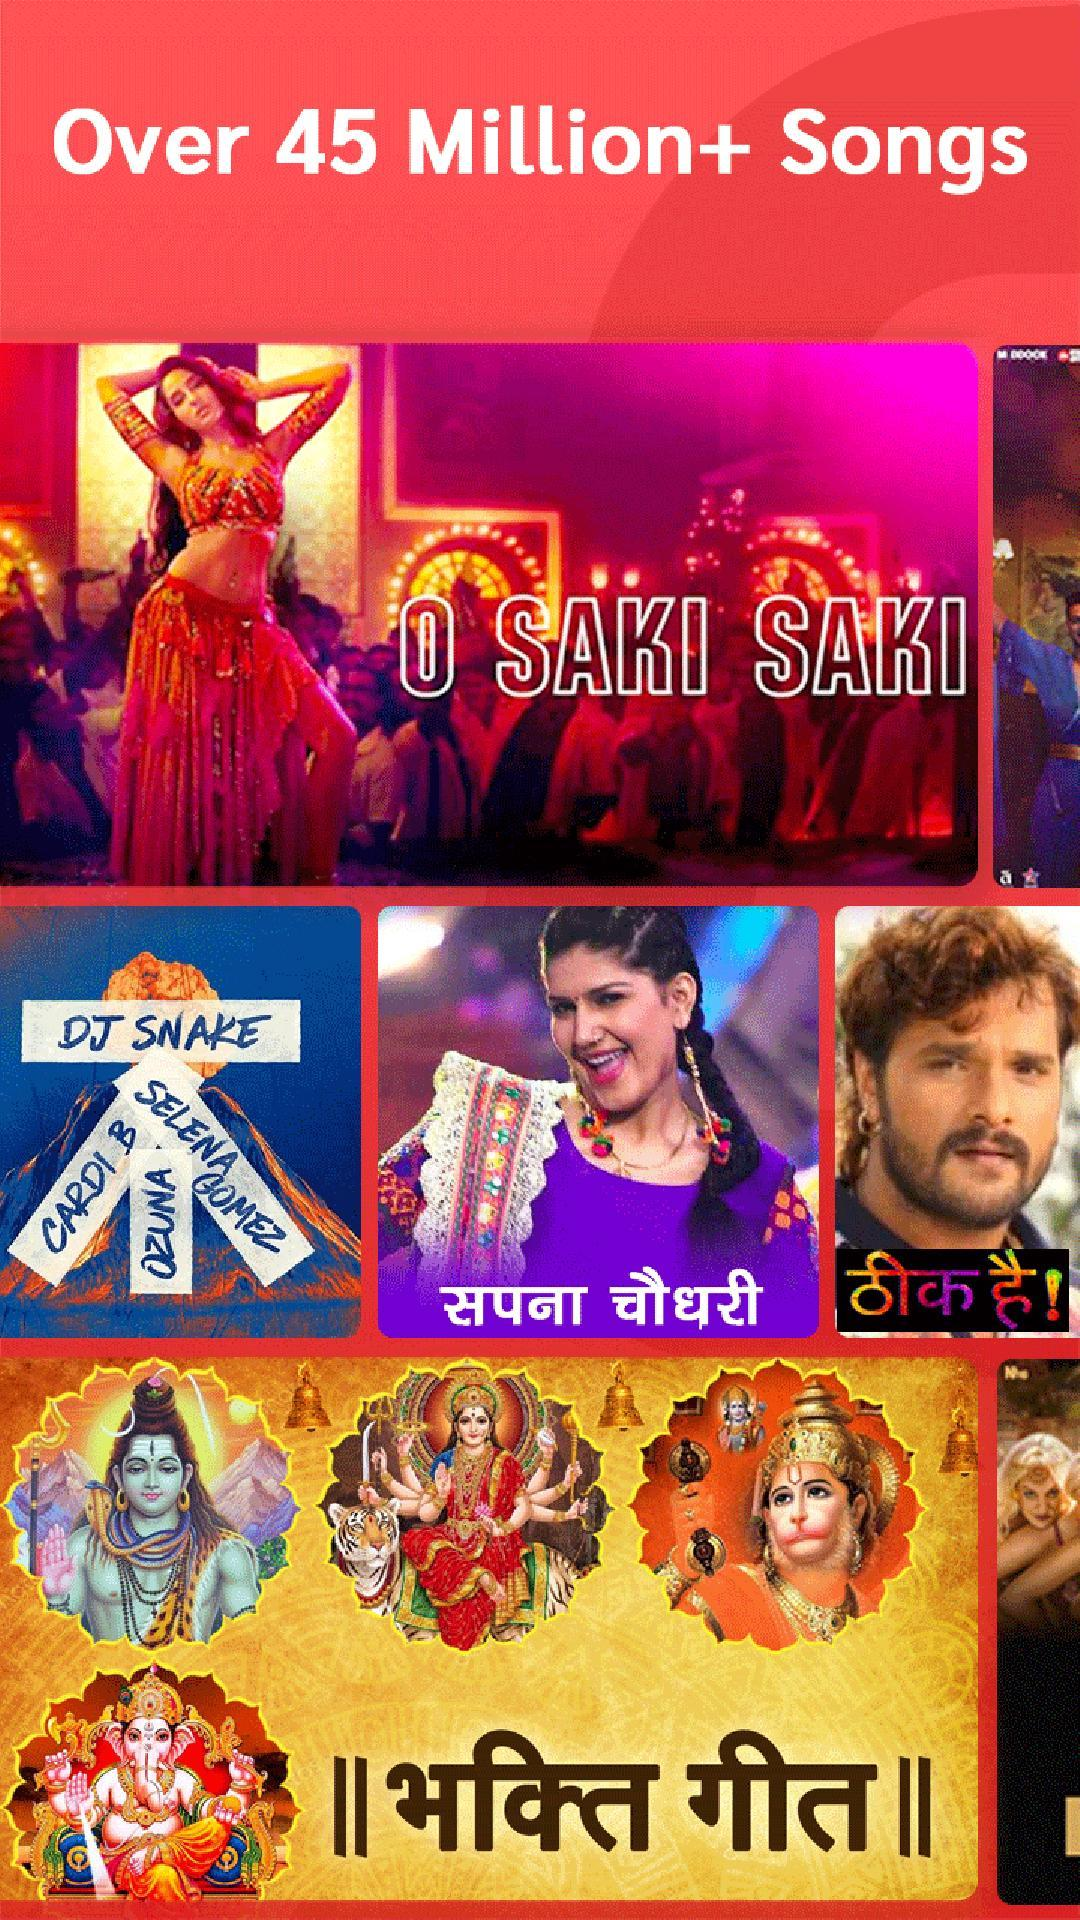 Gaana for Android - APK Download